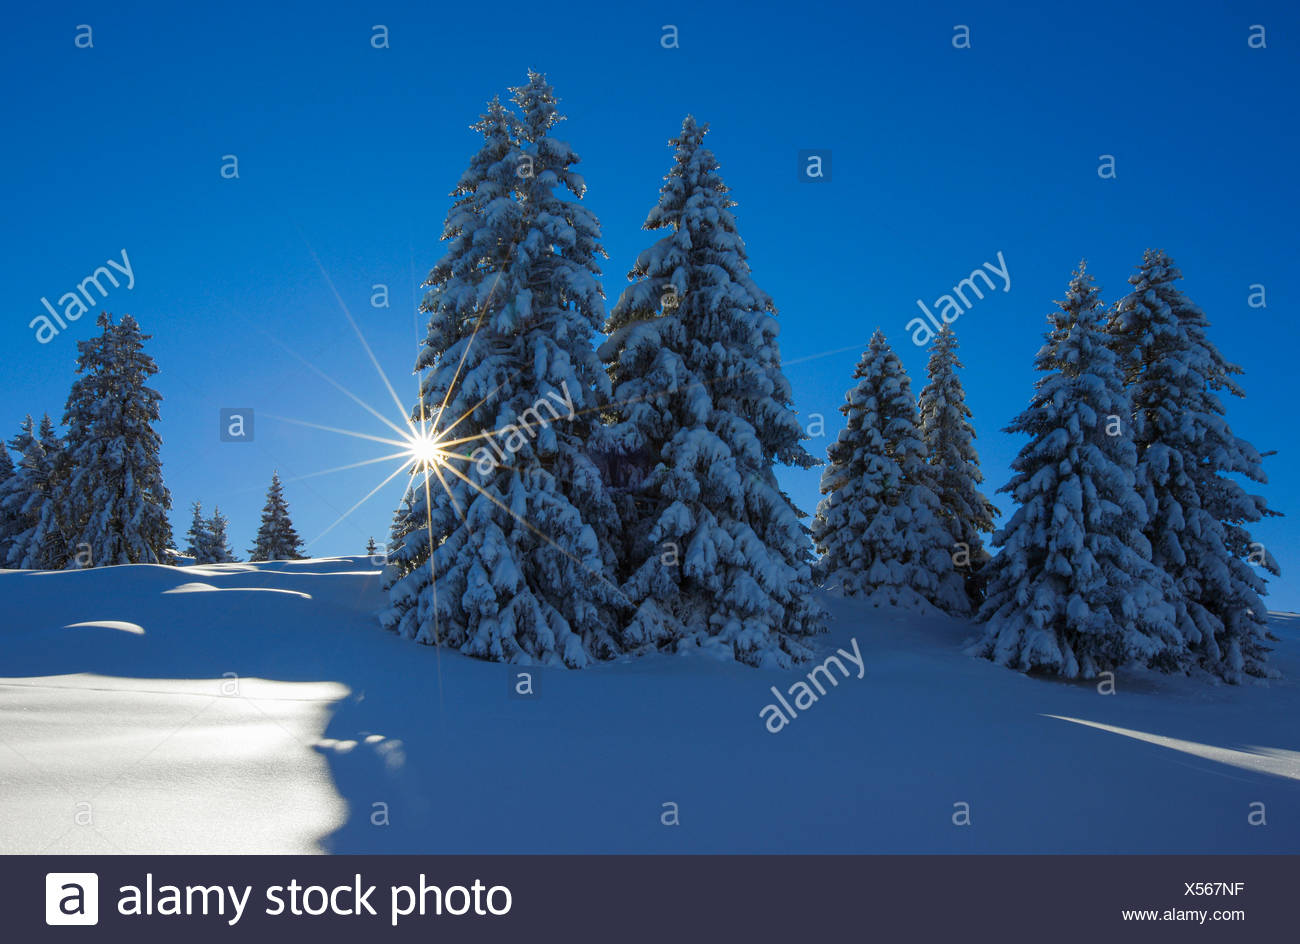 Tree, trees, spruce, spruces, Flumserberge, Flums mountain, mountains, back light, Heidiland, sky, snow, Switzerland, Europe, Swi - Stock Image